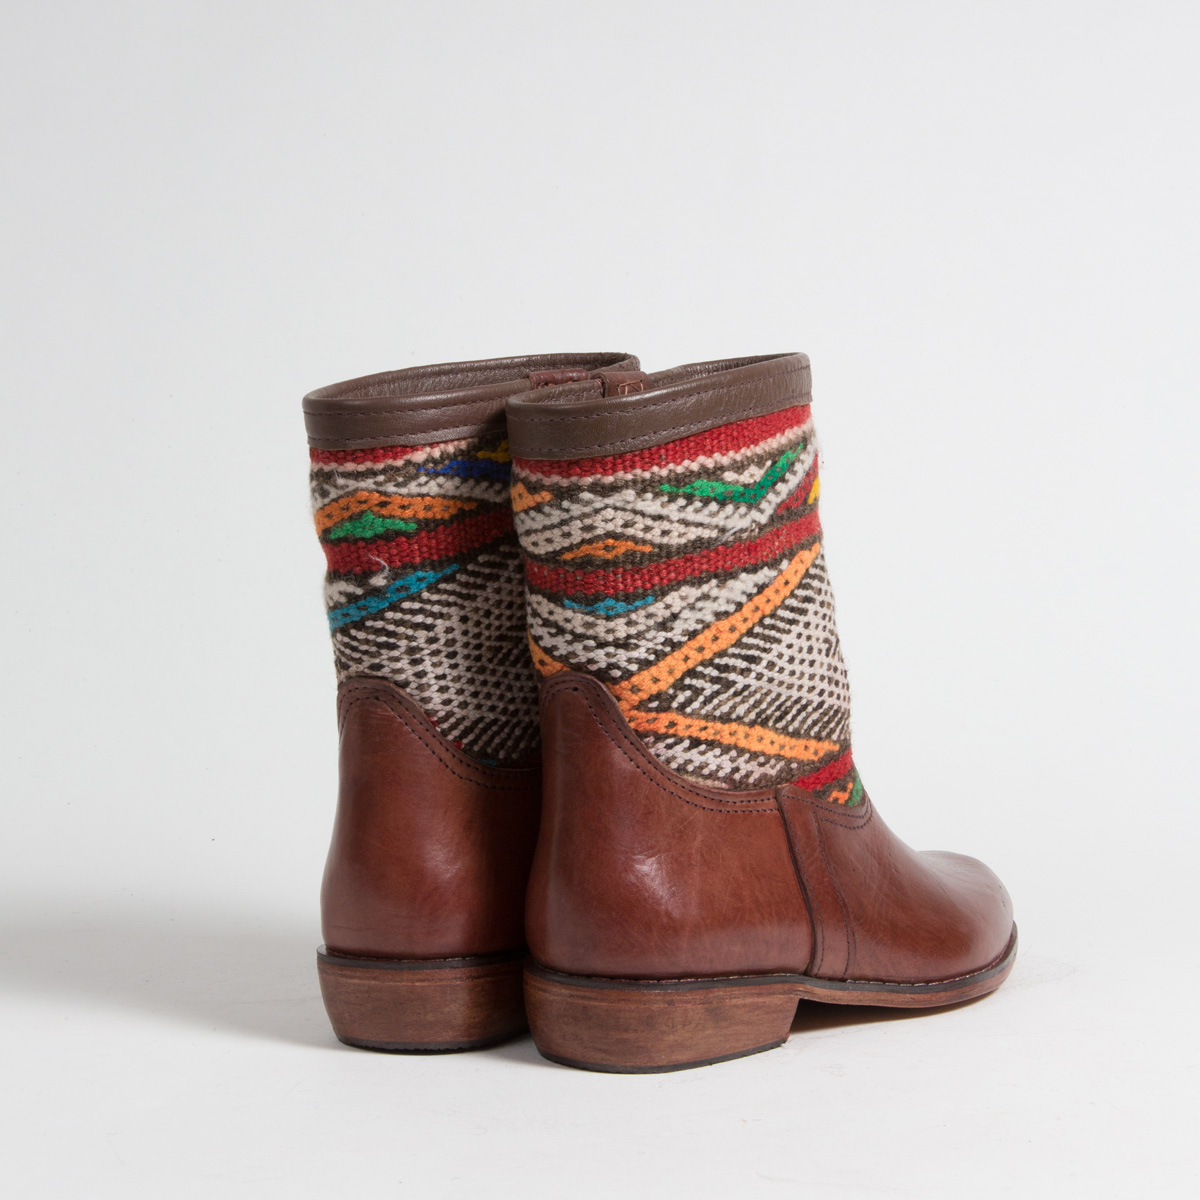 Bottines Kilim cuir mababouche artisanales (Réf. MCM7-40)